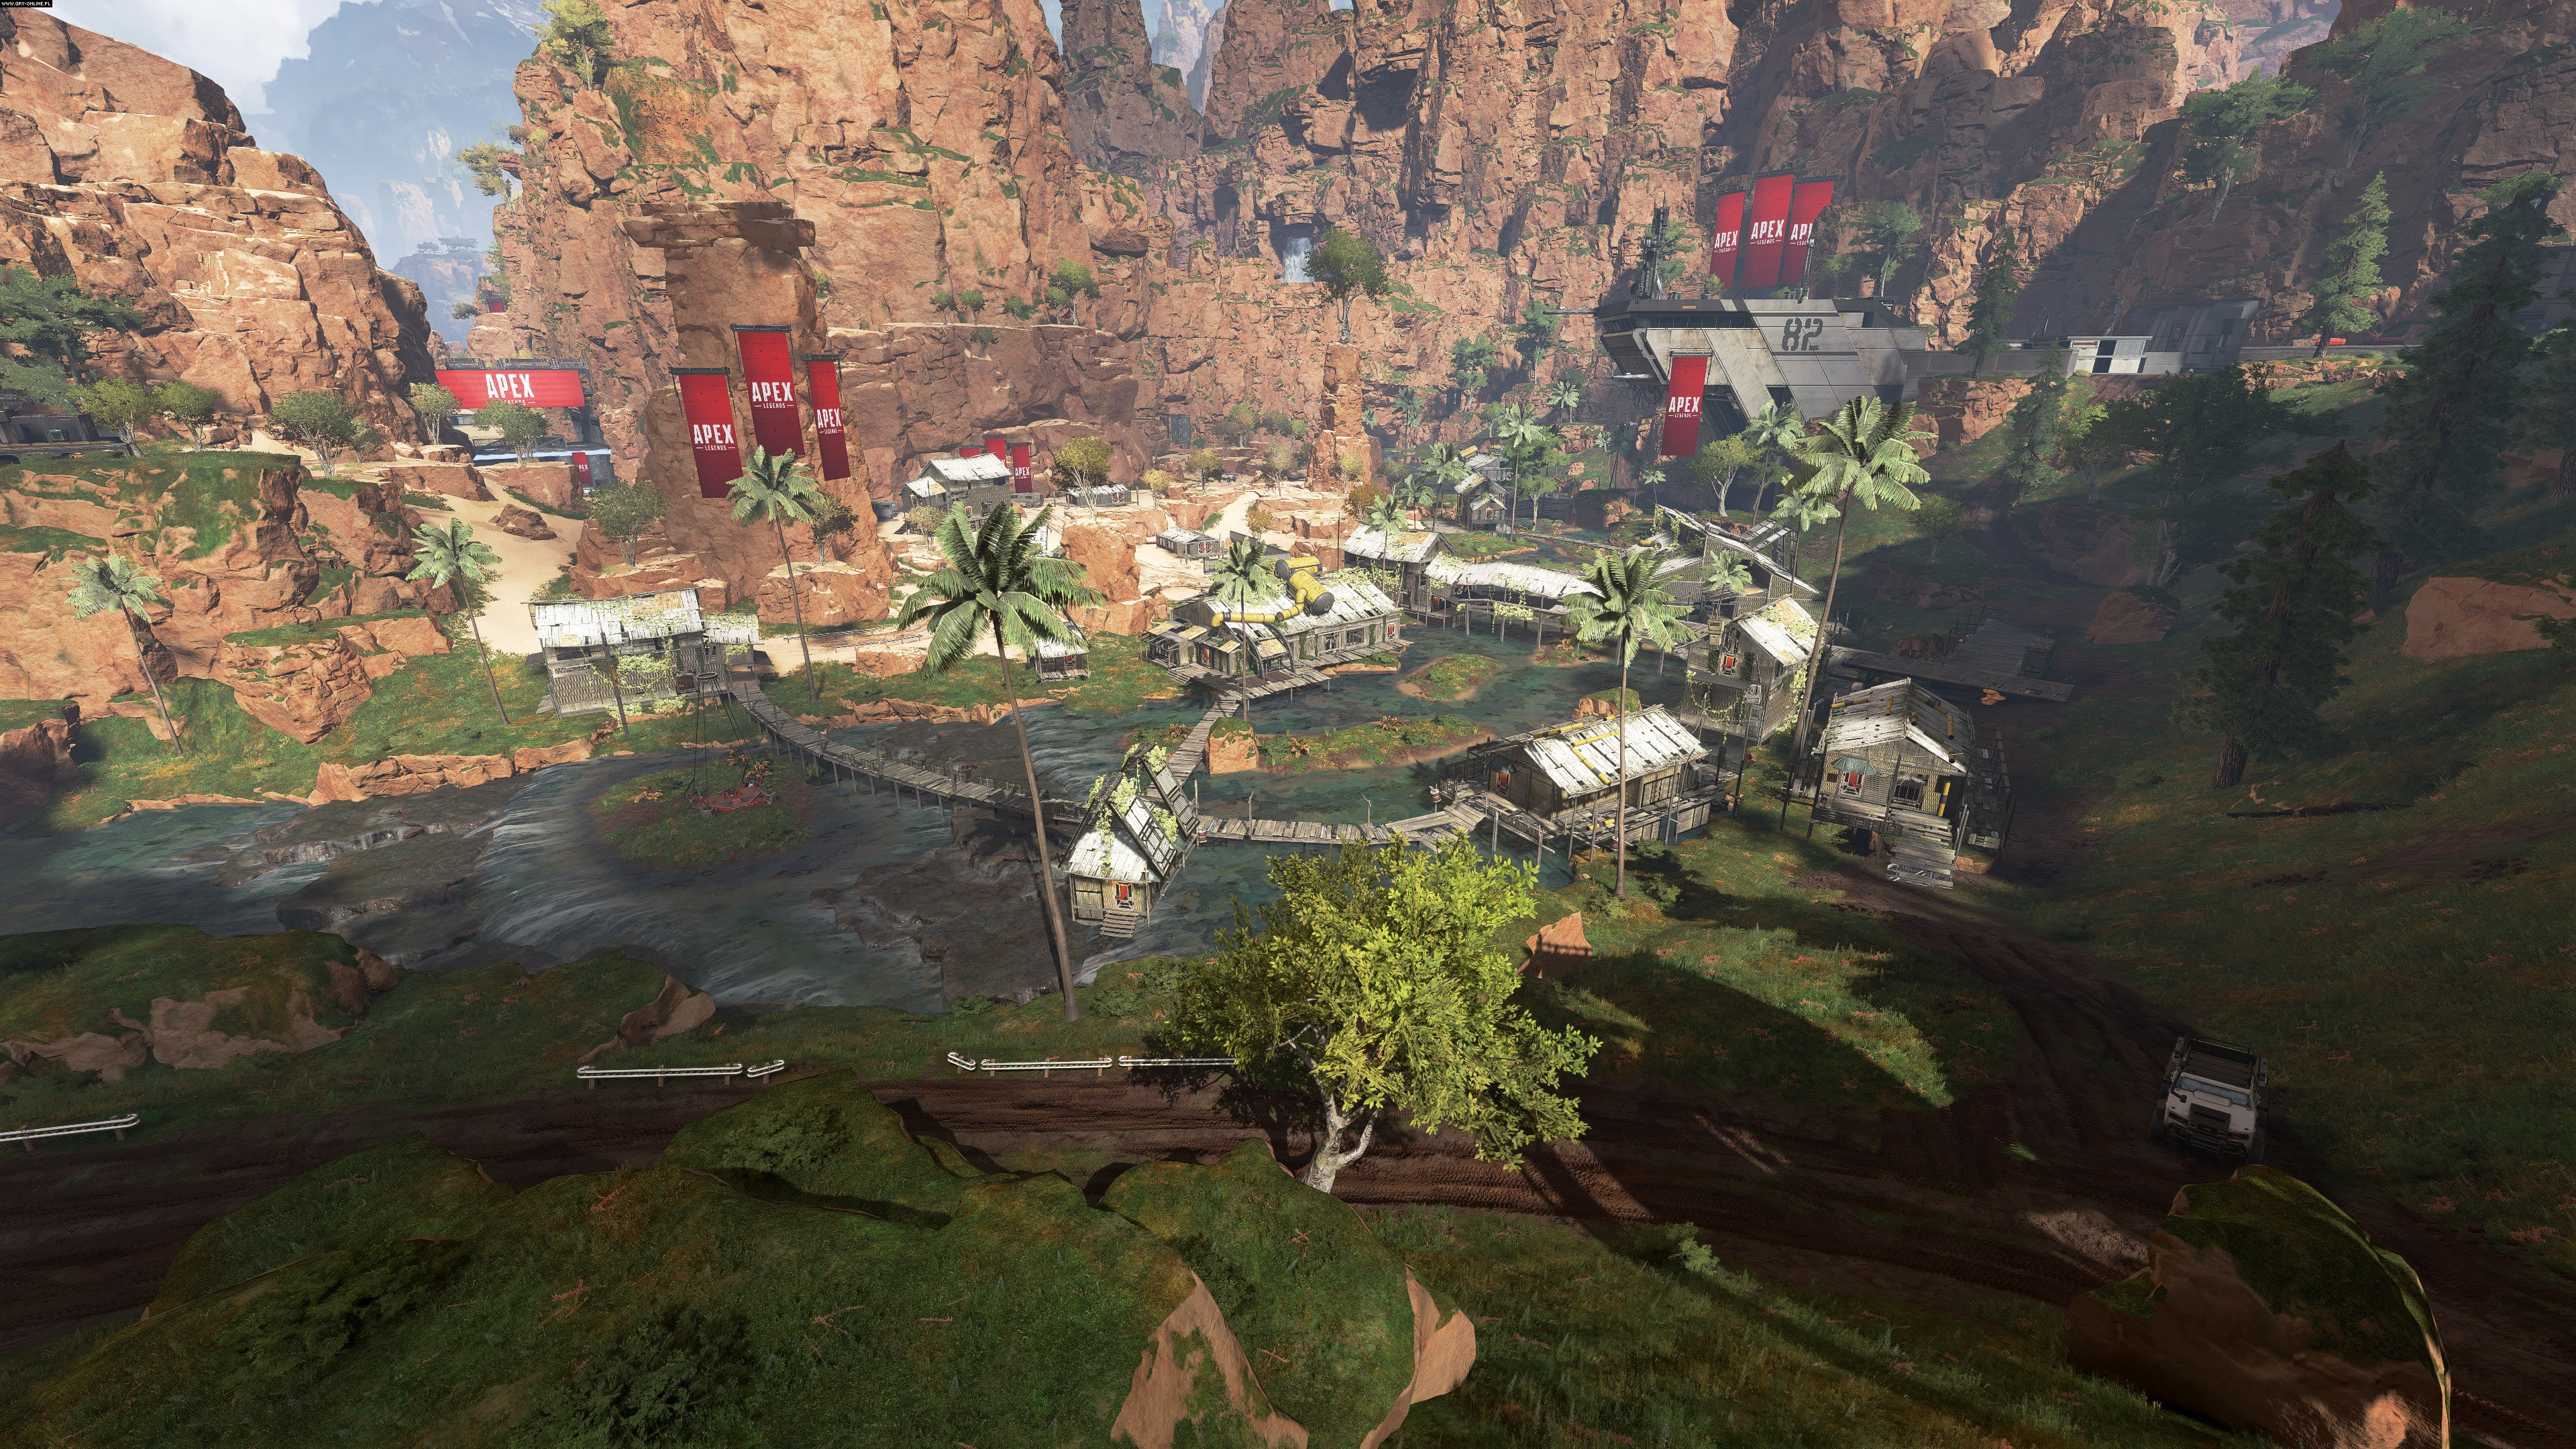 Apex Legends PC, PS4, XONE Games Image 2/13, Respawn Entertainment, Electronic Arts Inc.